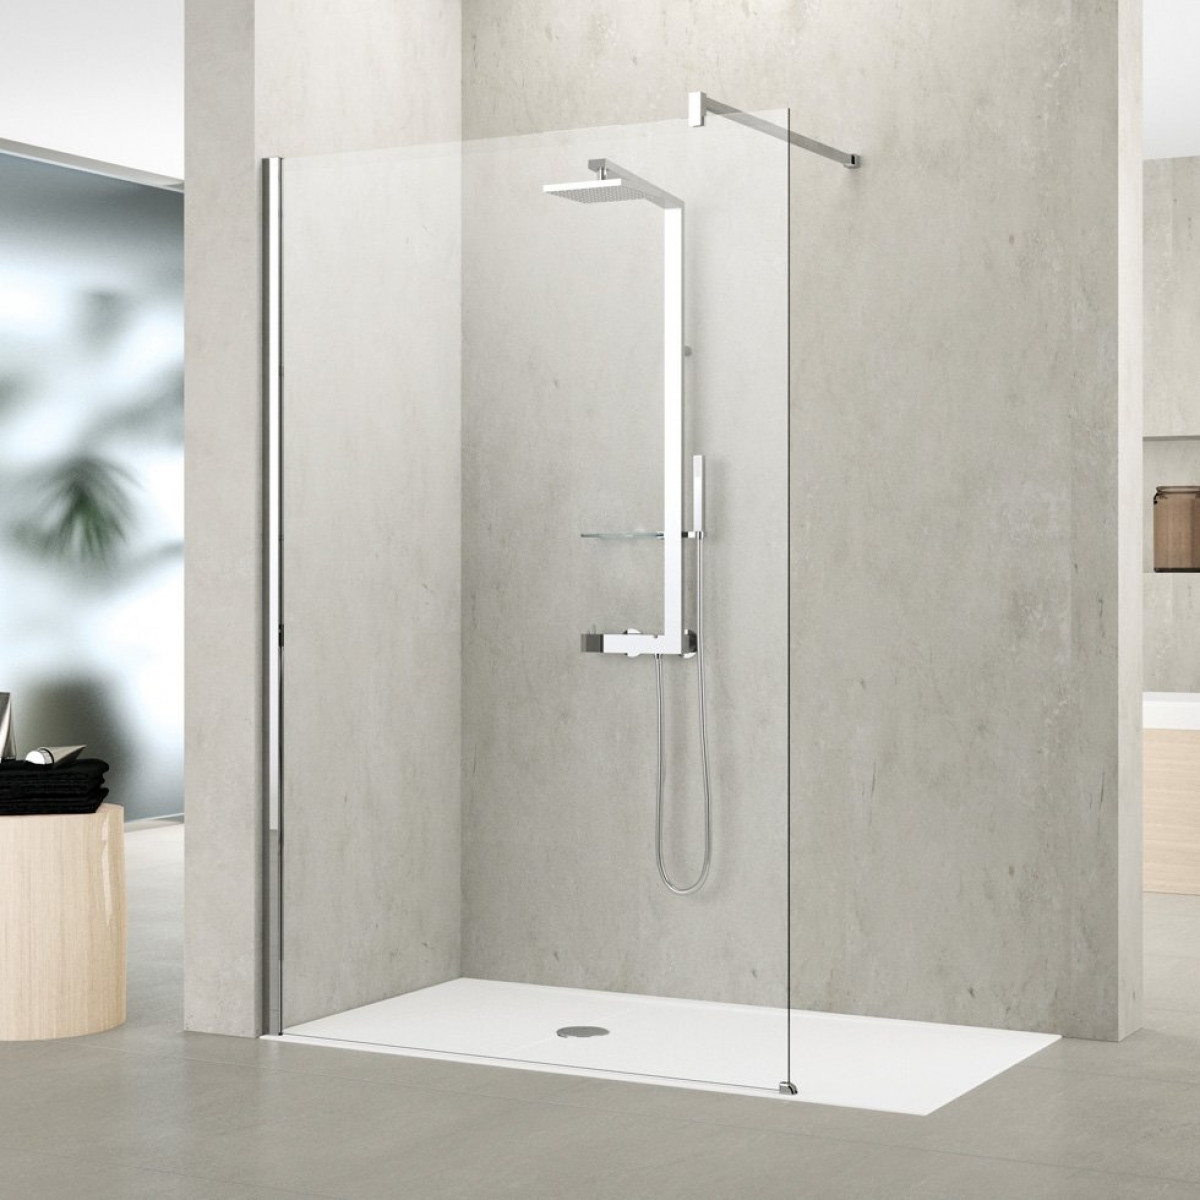 novellini shower panel kuadra h 1000mm kuadh100